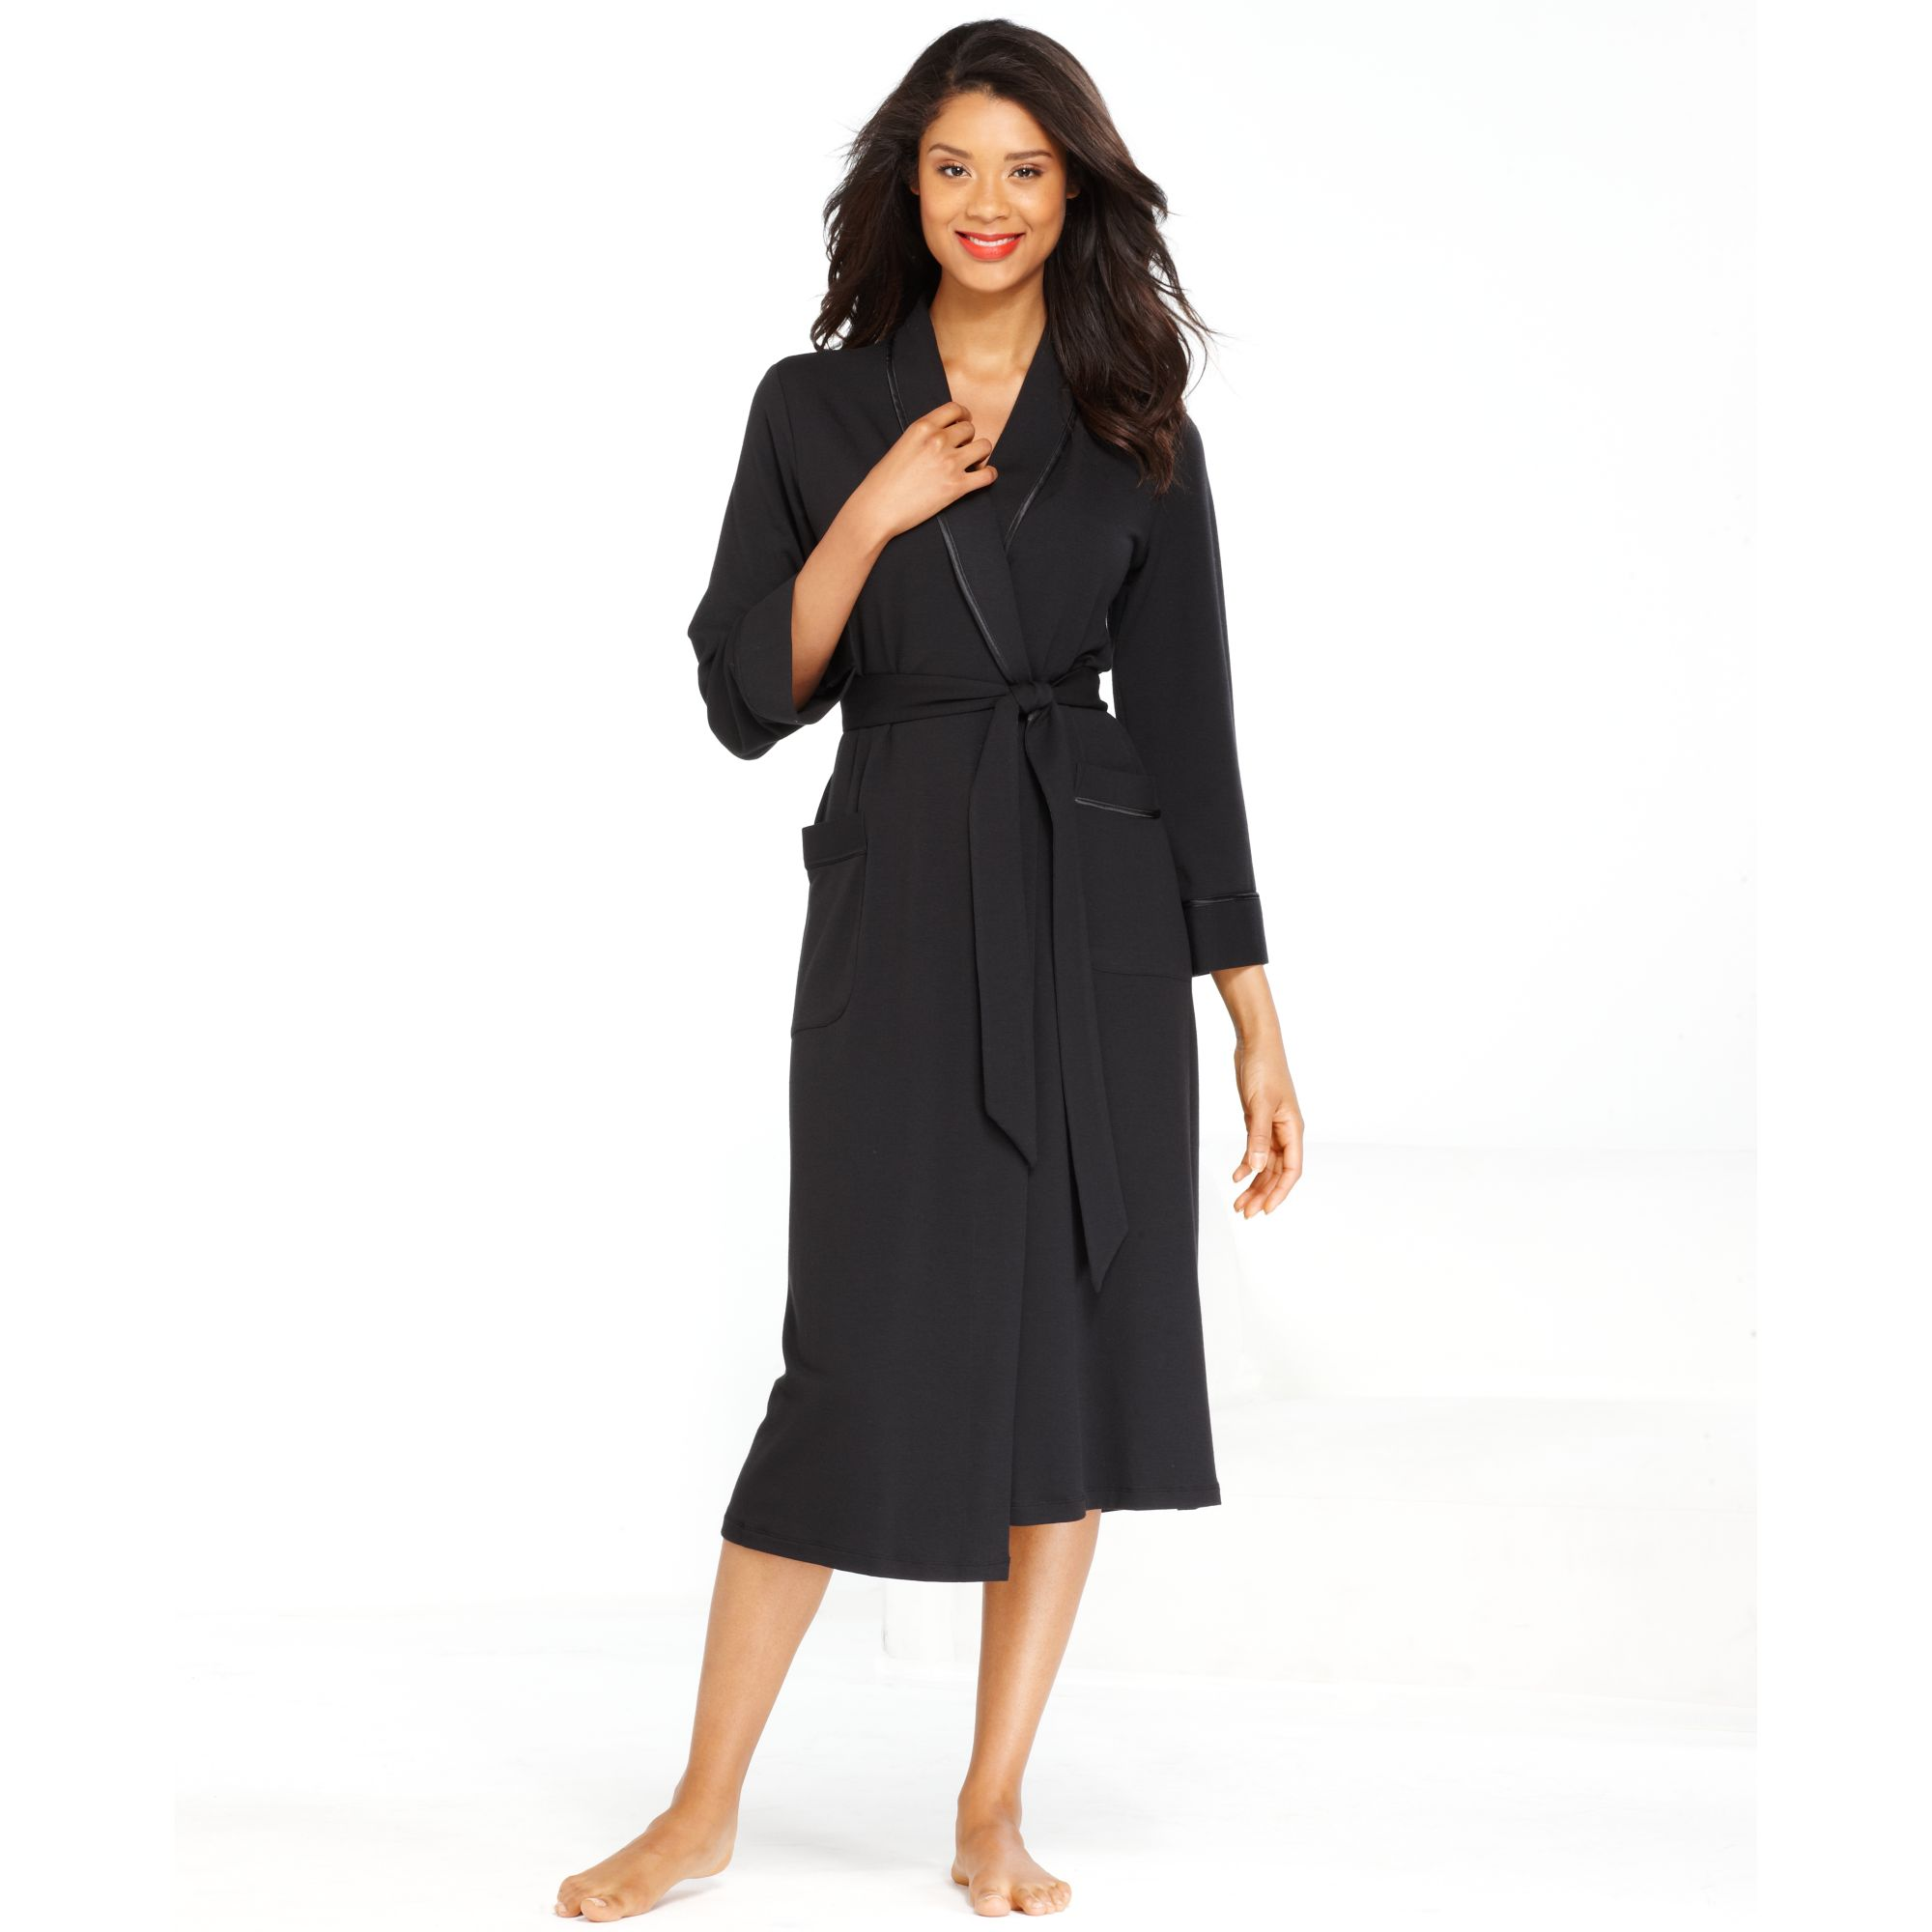 jones new york black french terry robe product 1 14498691 287119771